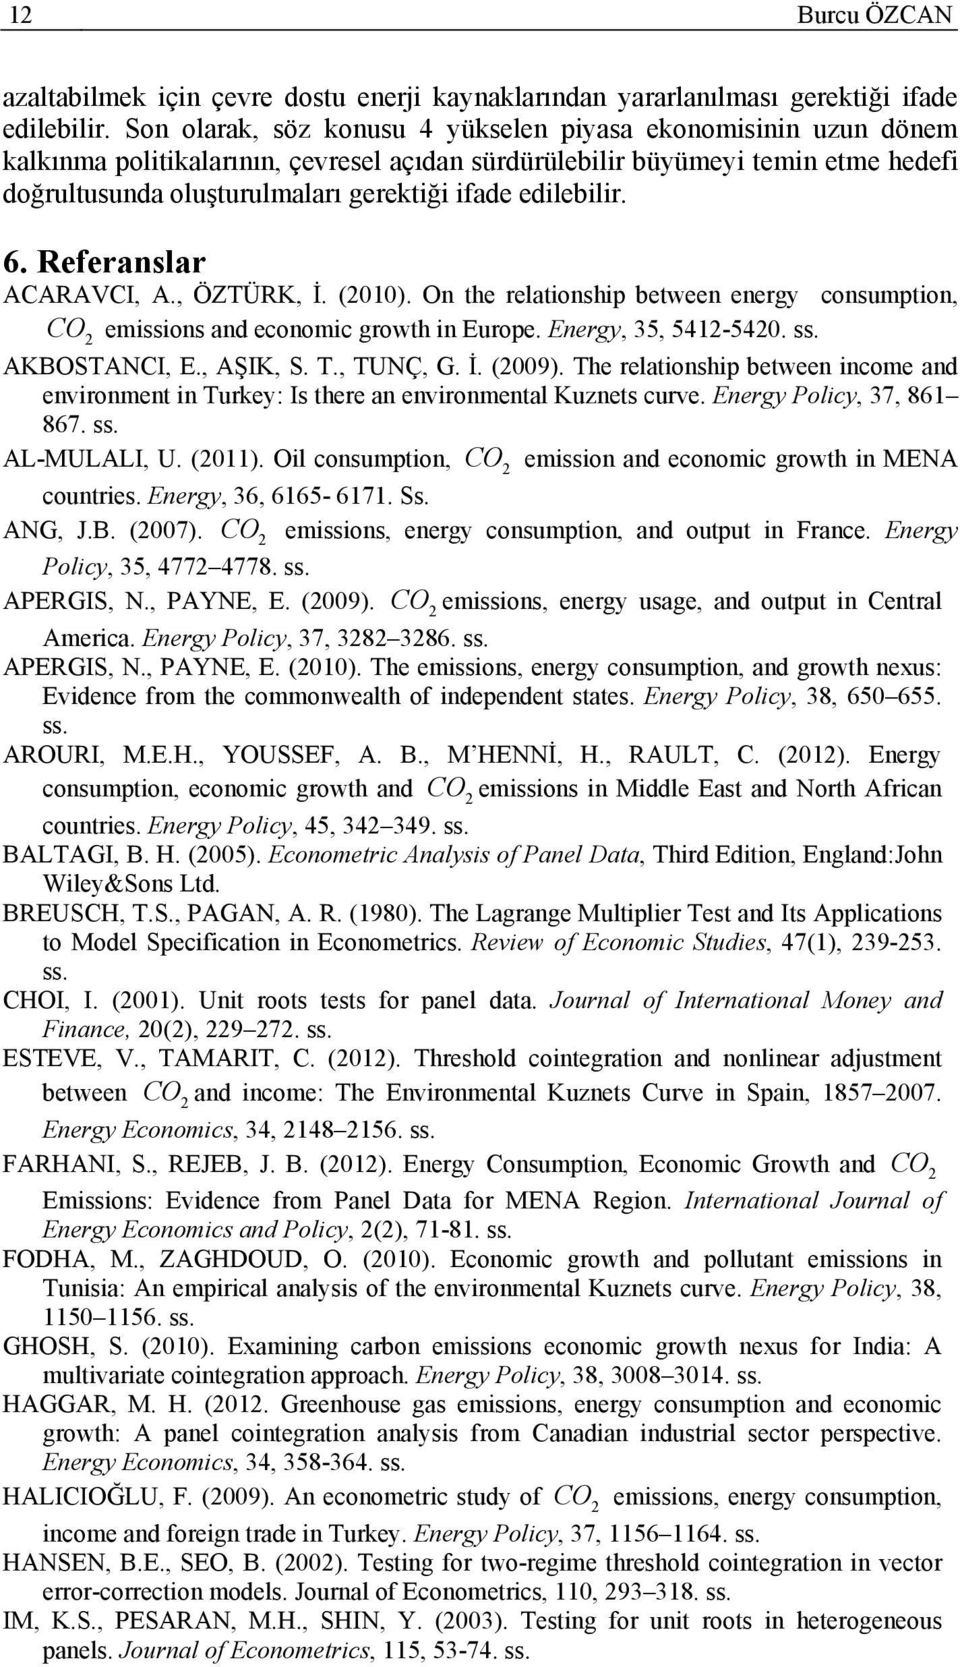 edilebilir. 6. Referanslar ACARAVCI, A., ÖZTÜRK, İ. (00). On the relationship between energy consumption, CO emissions and economic growth in Europe. Energy, 35, 54-540. ss. AKBOSTANCI, E., AŞIK, S.